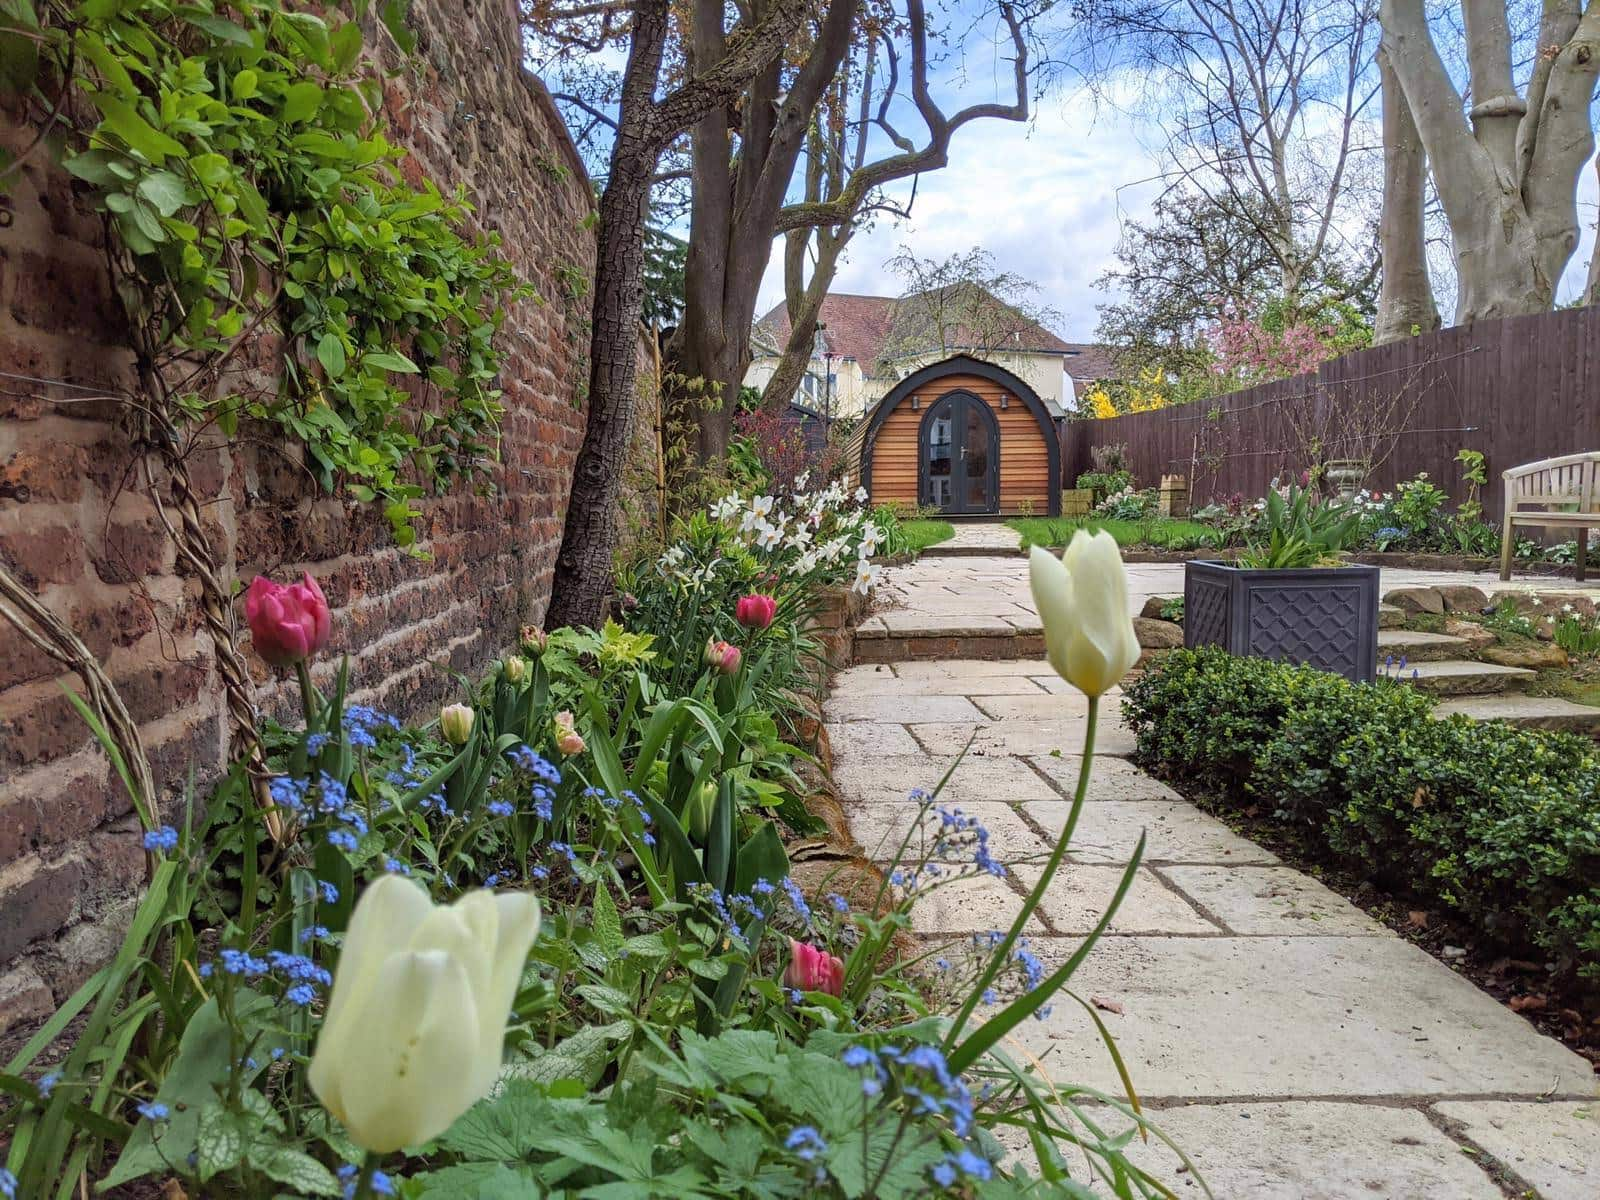 Garden design top tips